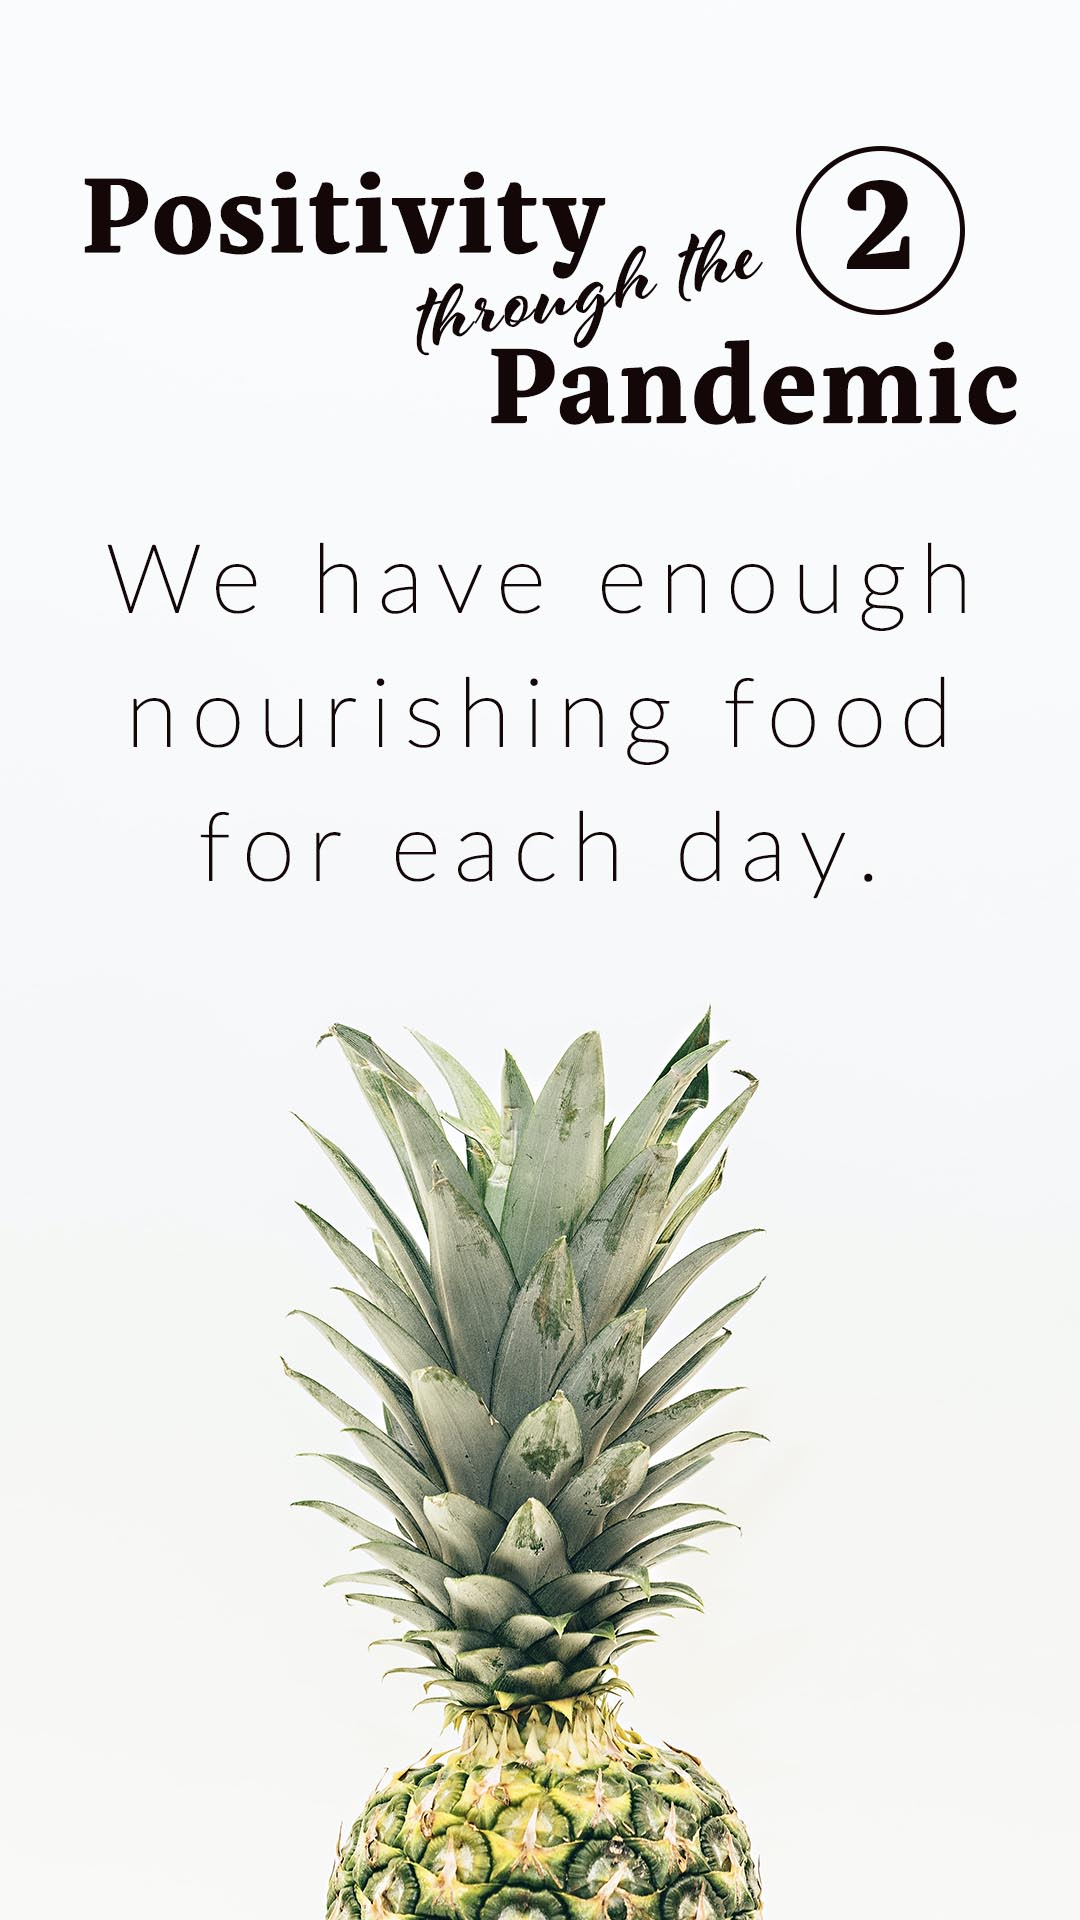 Positivity through the Pandemic #2: We have enough nourishing food for each day